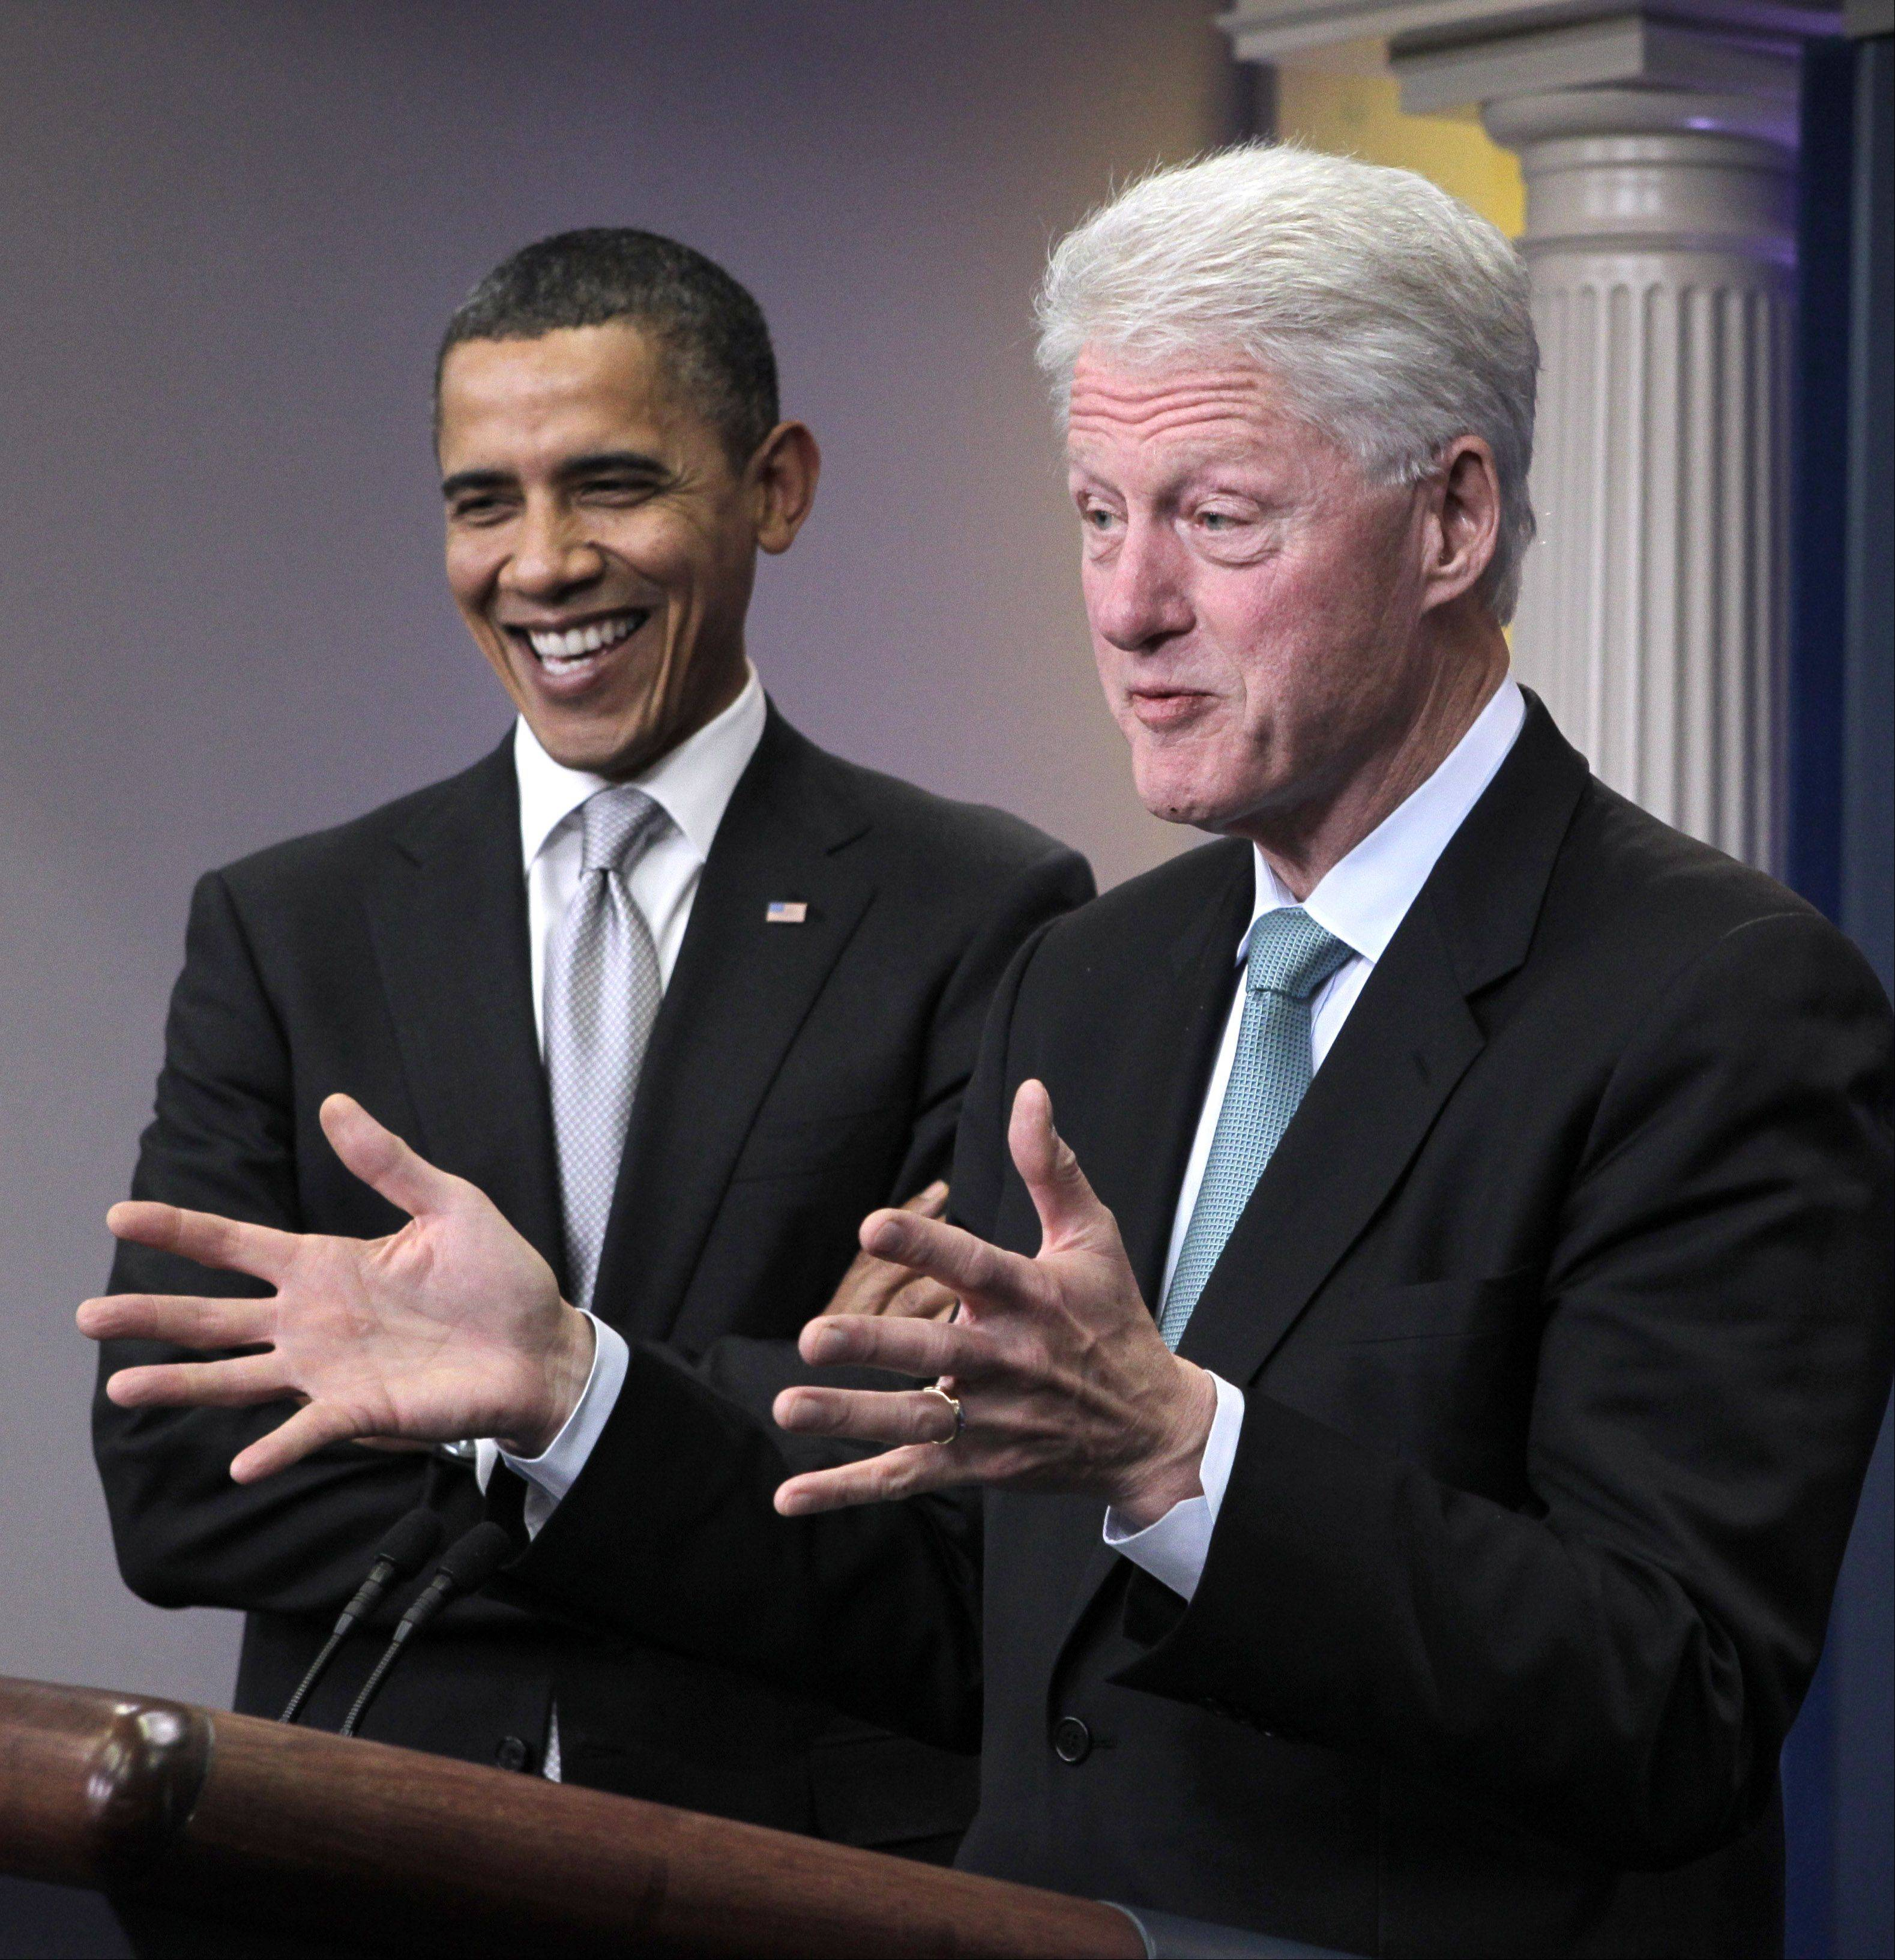 Health care is reuniting President Barack Obama and former President Bill Clinton.